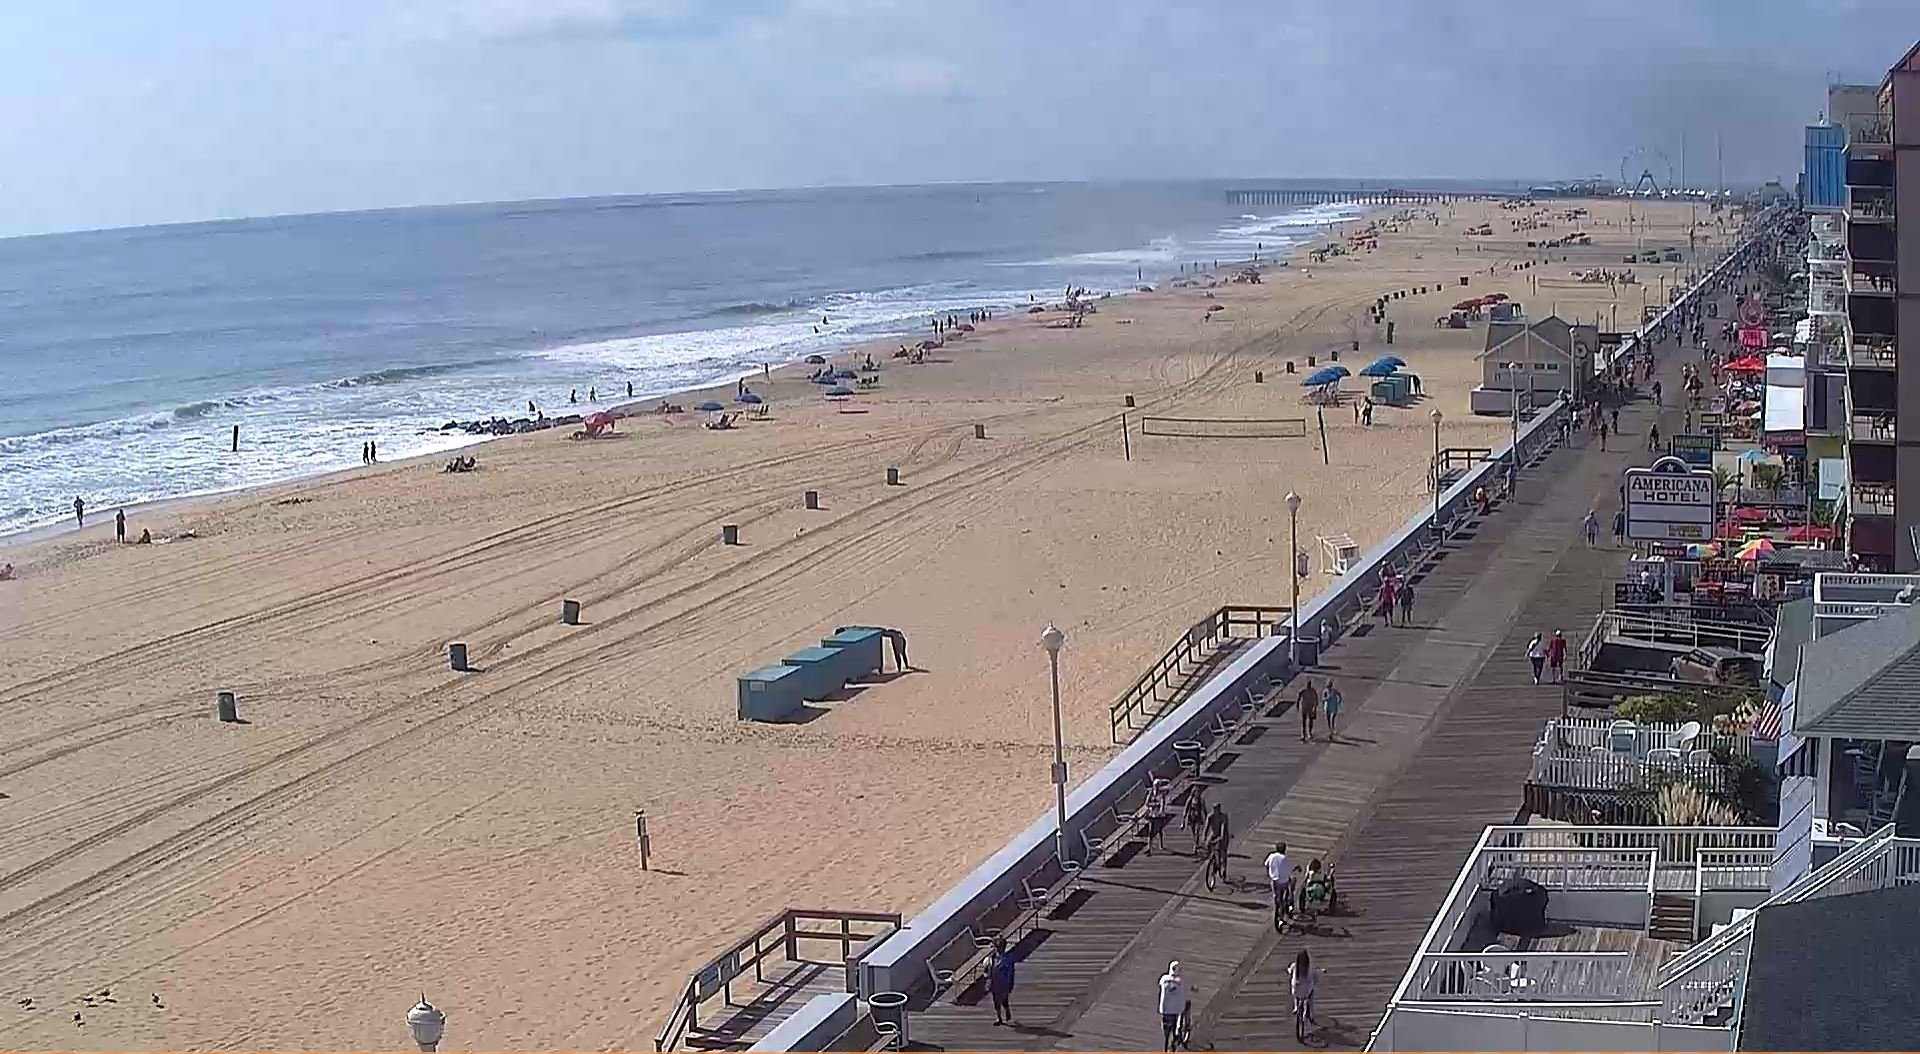 Hotel Monte Carlo Oceanfront | Live Webcams Ocean City MD